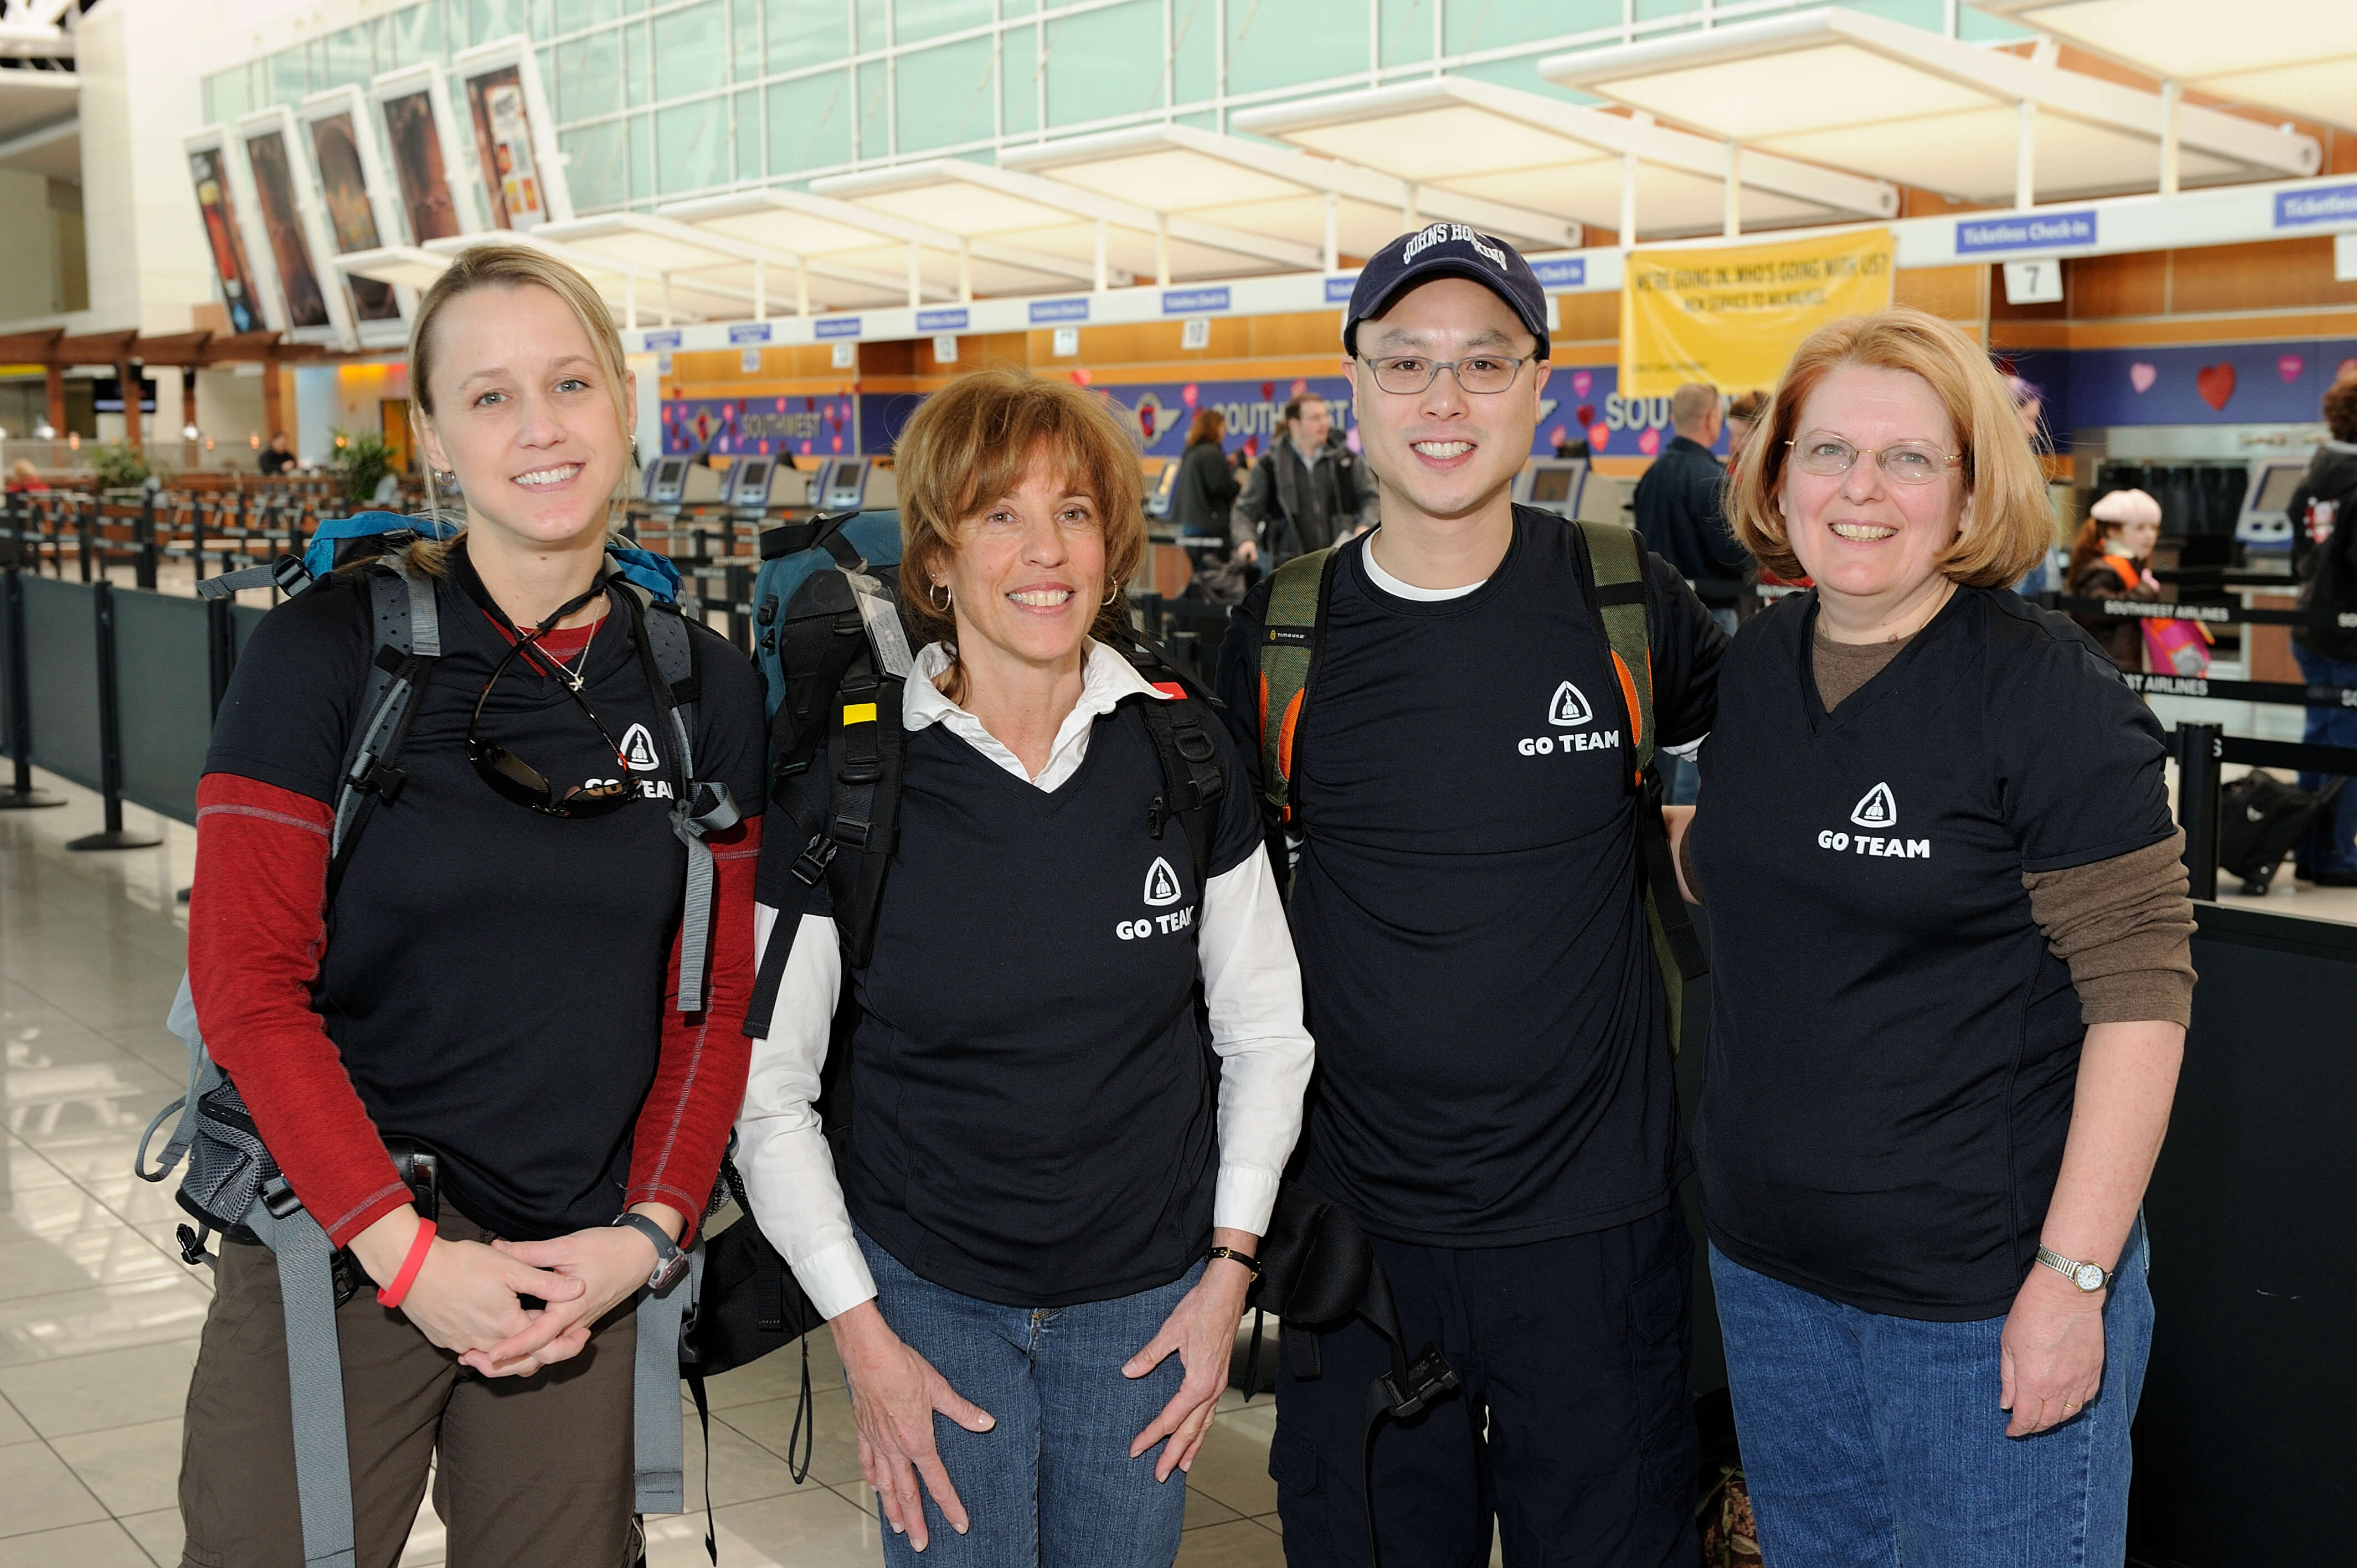 Hopkins Go Team 4 Haiti Mission